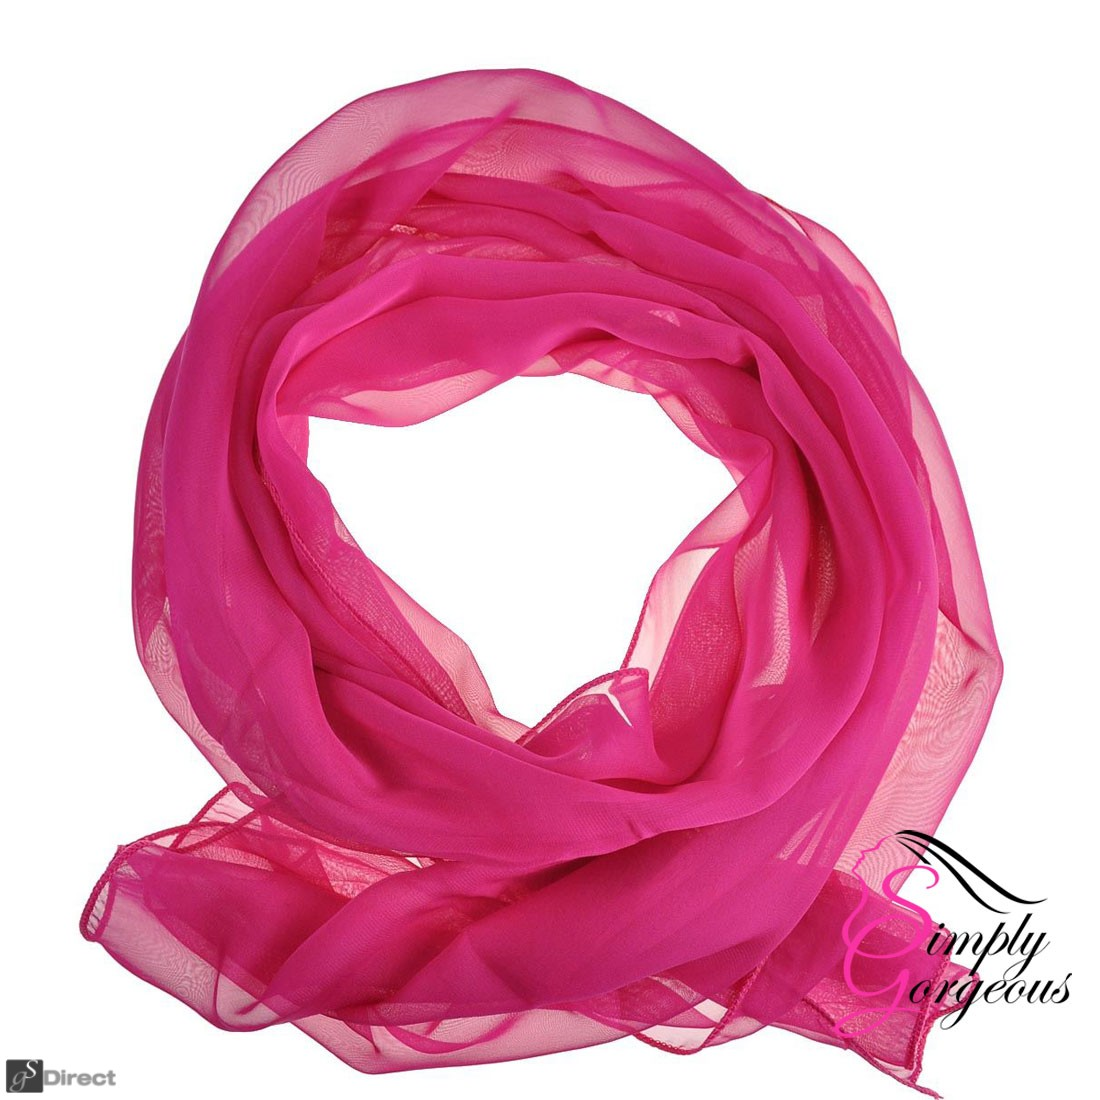 Classic Plain Chiffon Scarf Silk Feel Soft Neck lady Shawl Hijab Scarves - Fucshia